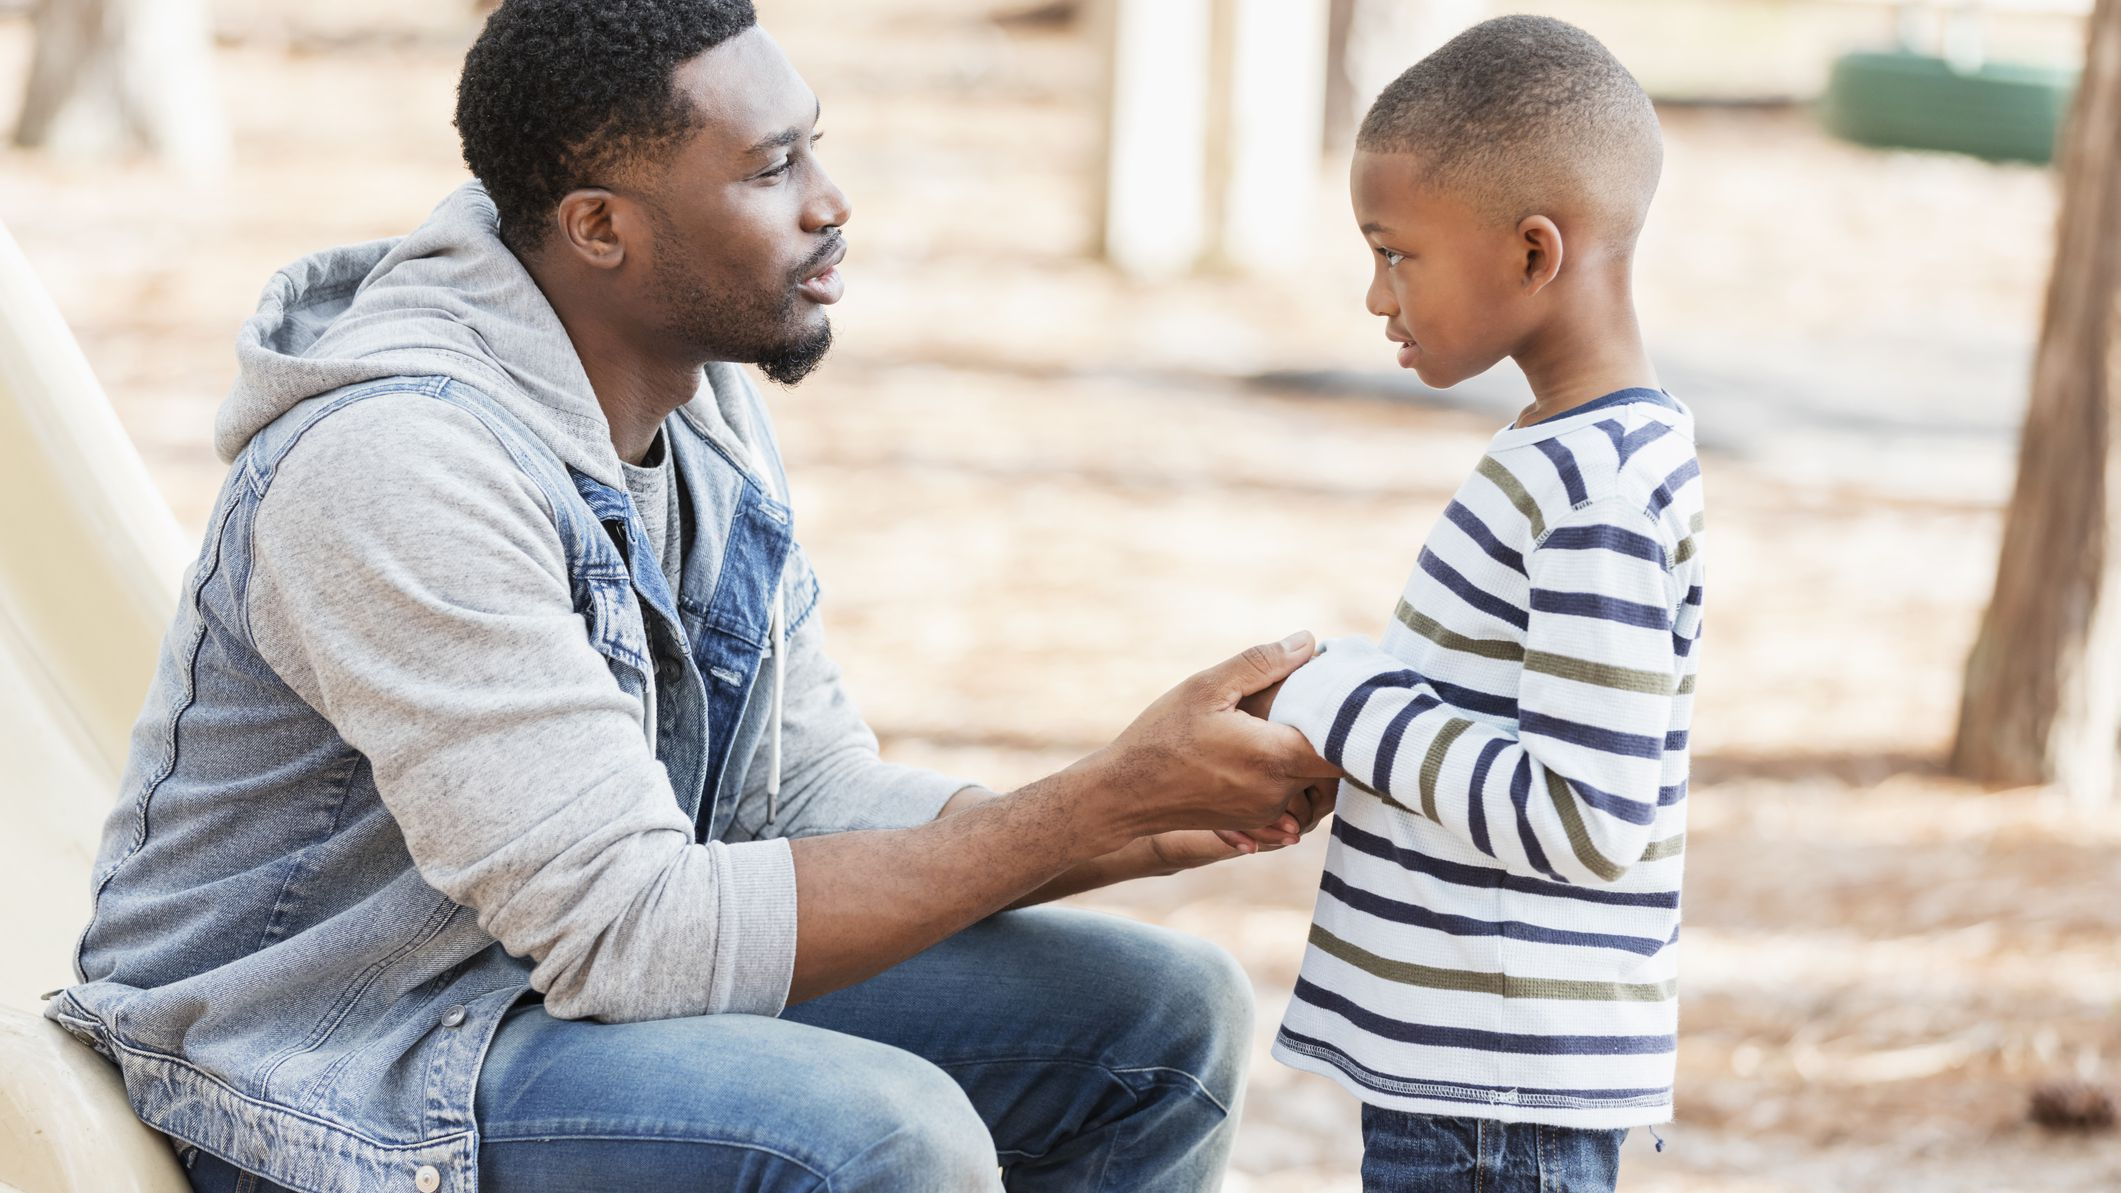 how to deal with child aggressiveness